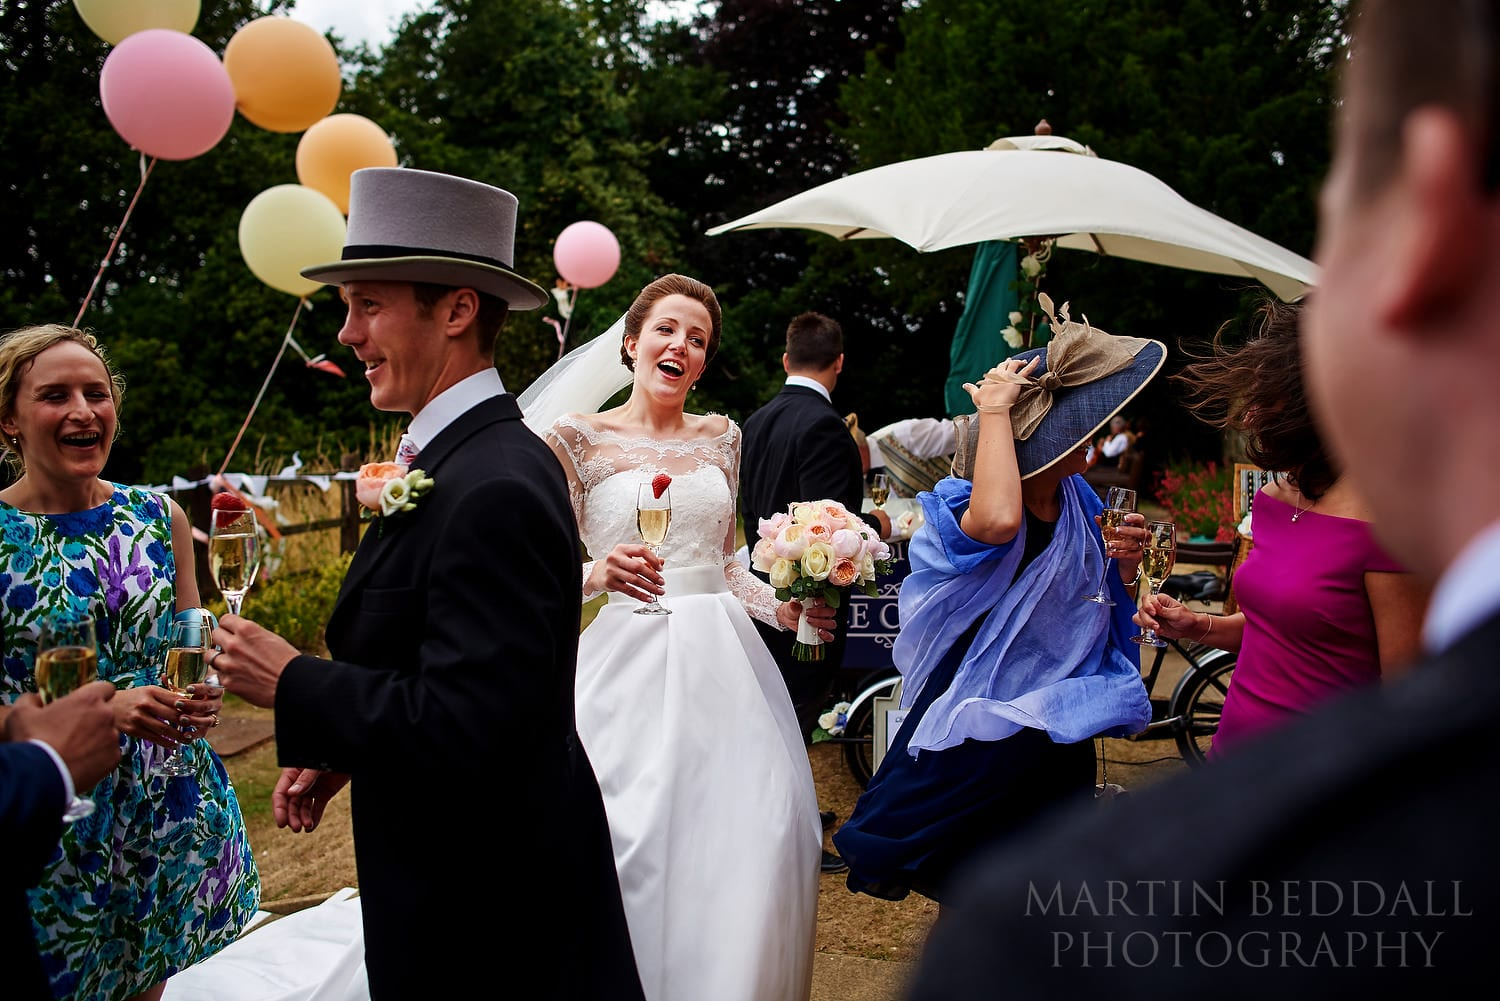 Reportage wedding Photography in 2015